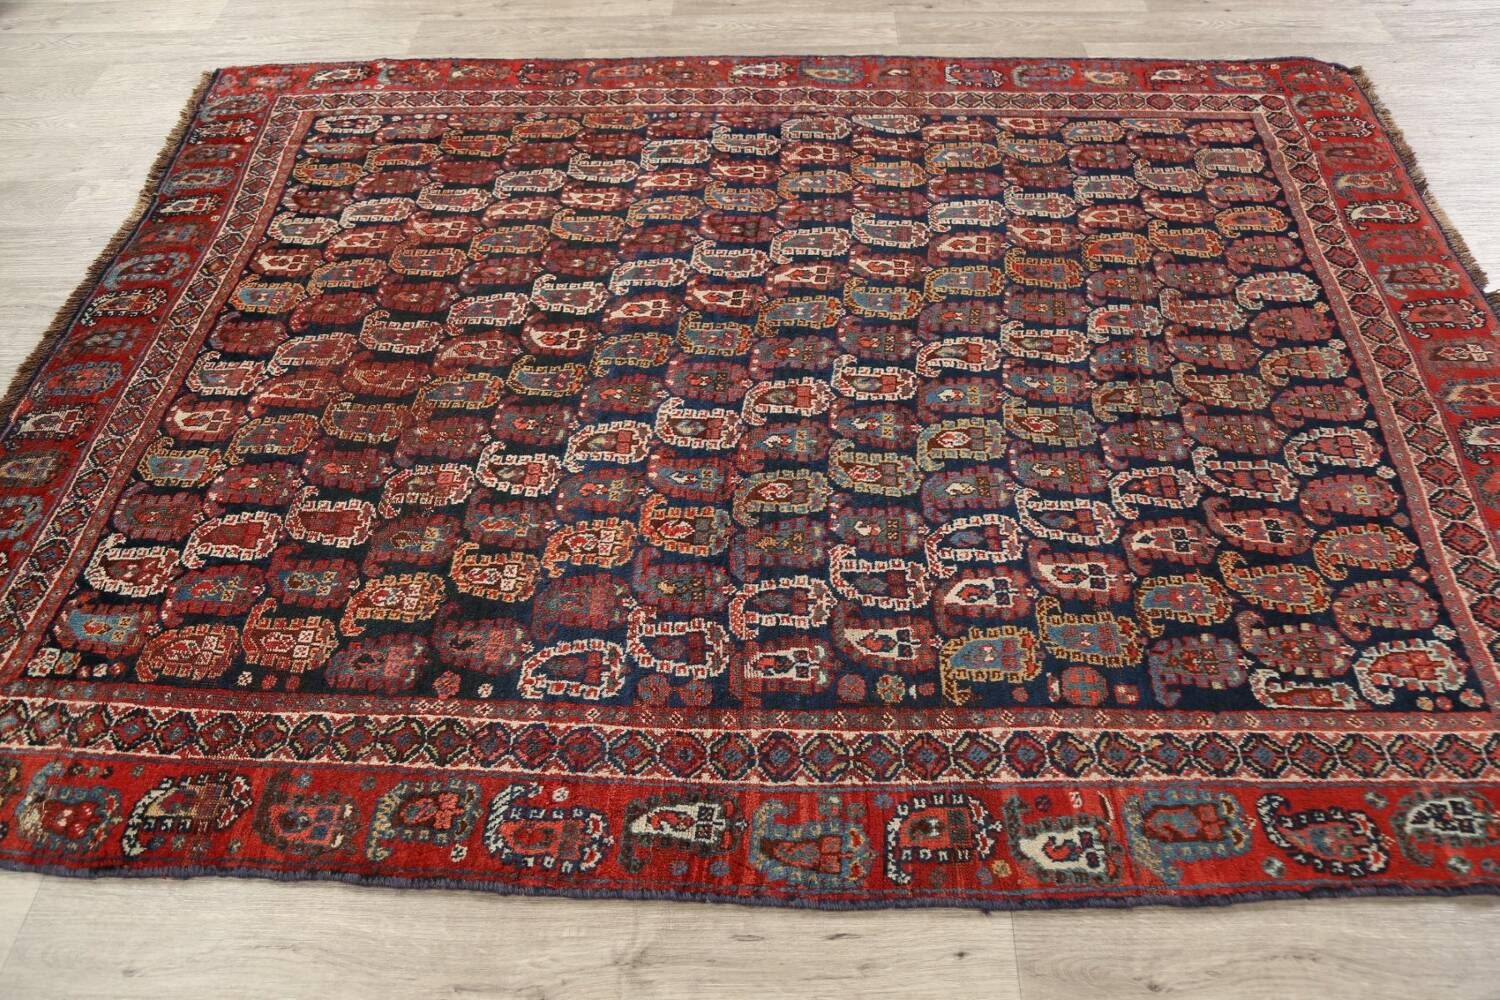 Pre-1900 Antique All-Over Malayer Persian Area Rug 6x7 image 15